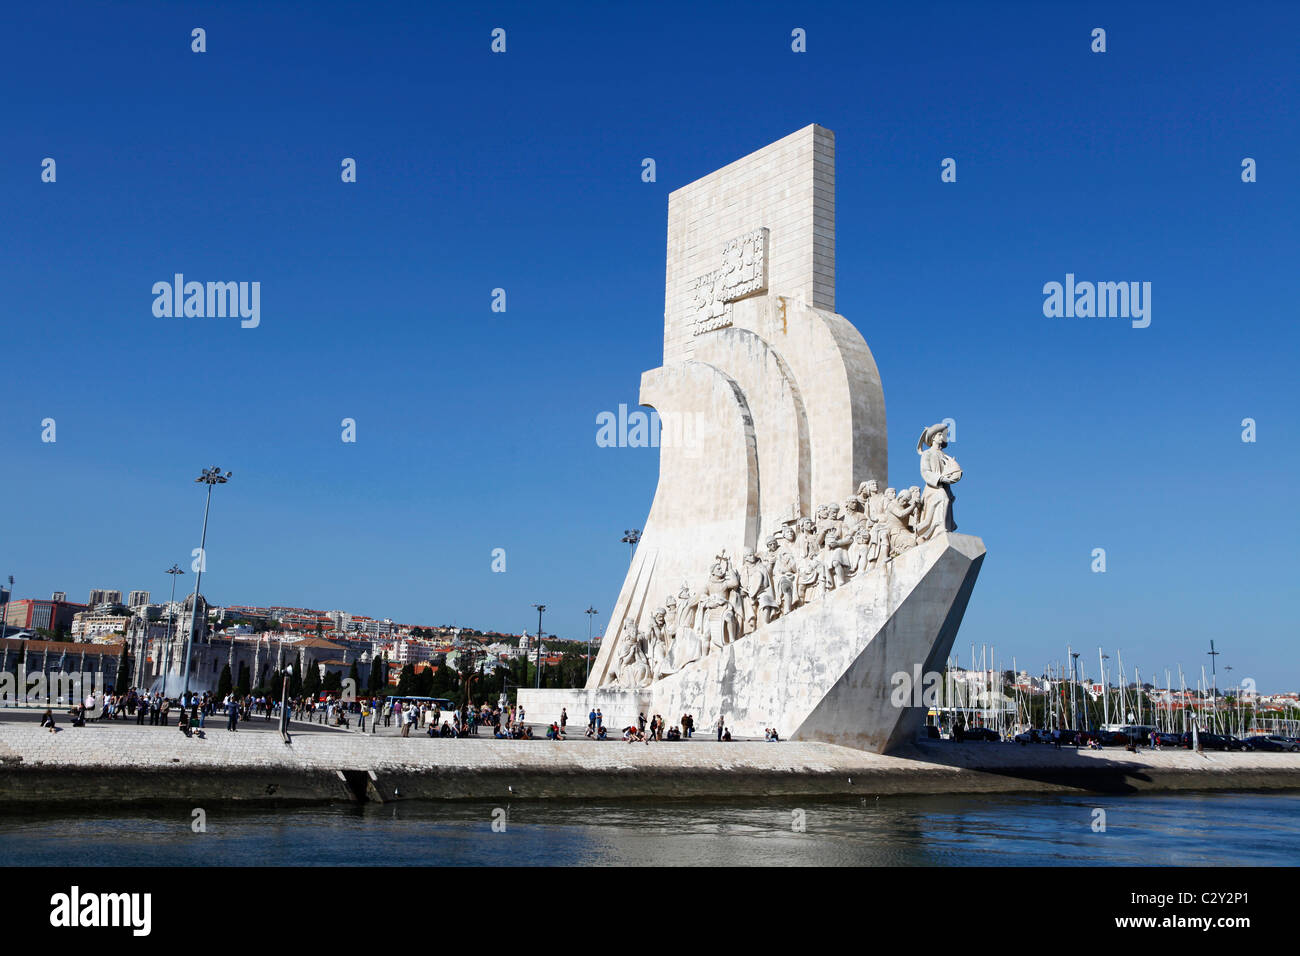 The Monument of the Discoveries (Padrao dos Descobrimentos) in Belem, Lisbon, Portugal. - Stock Image